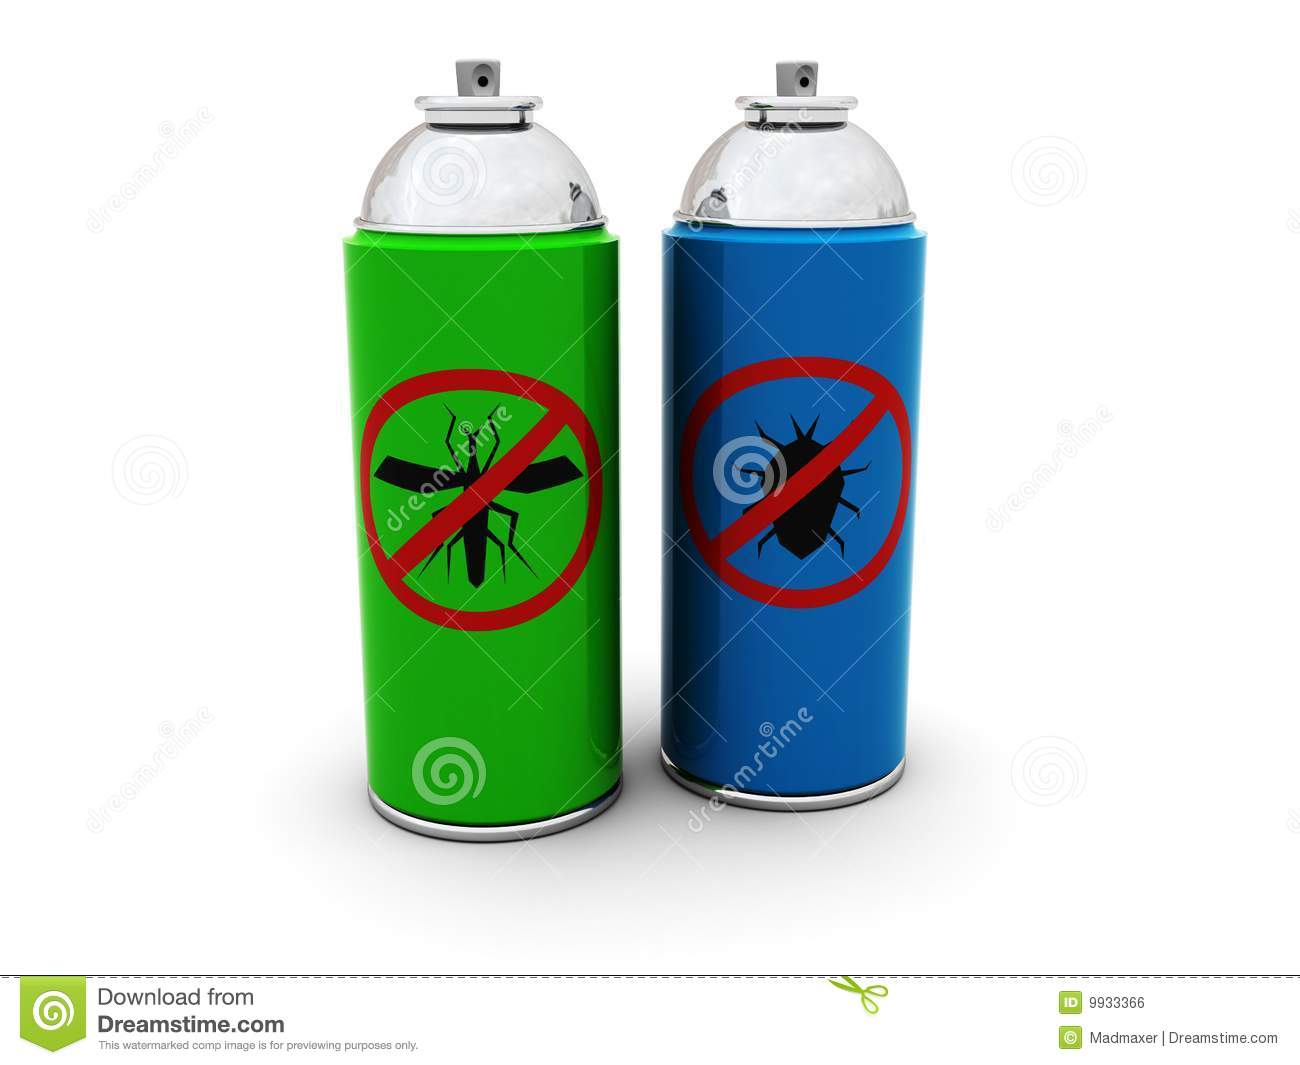 Insecticide clipart - Clipground